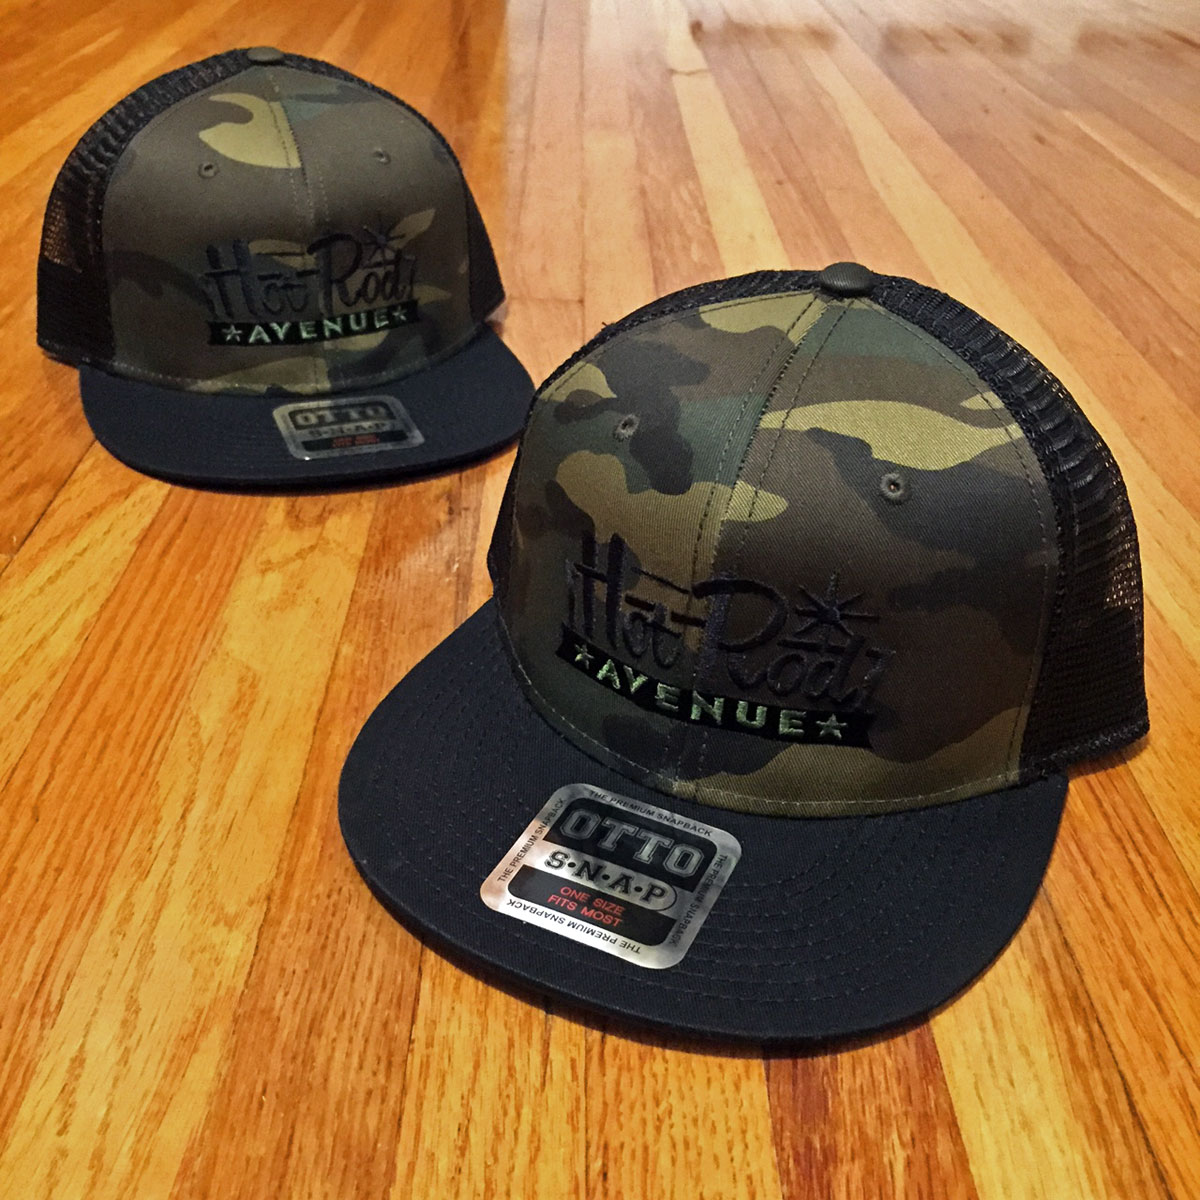 069271e303735 Hot Rod Avenue Camo Flatbill Trucker Hats – Low Label